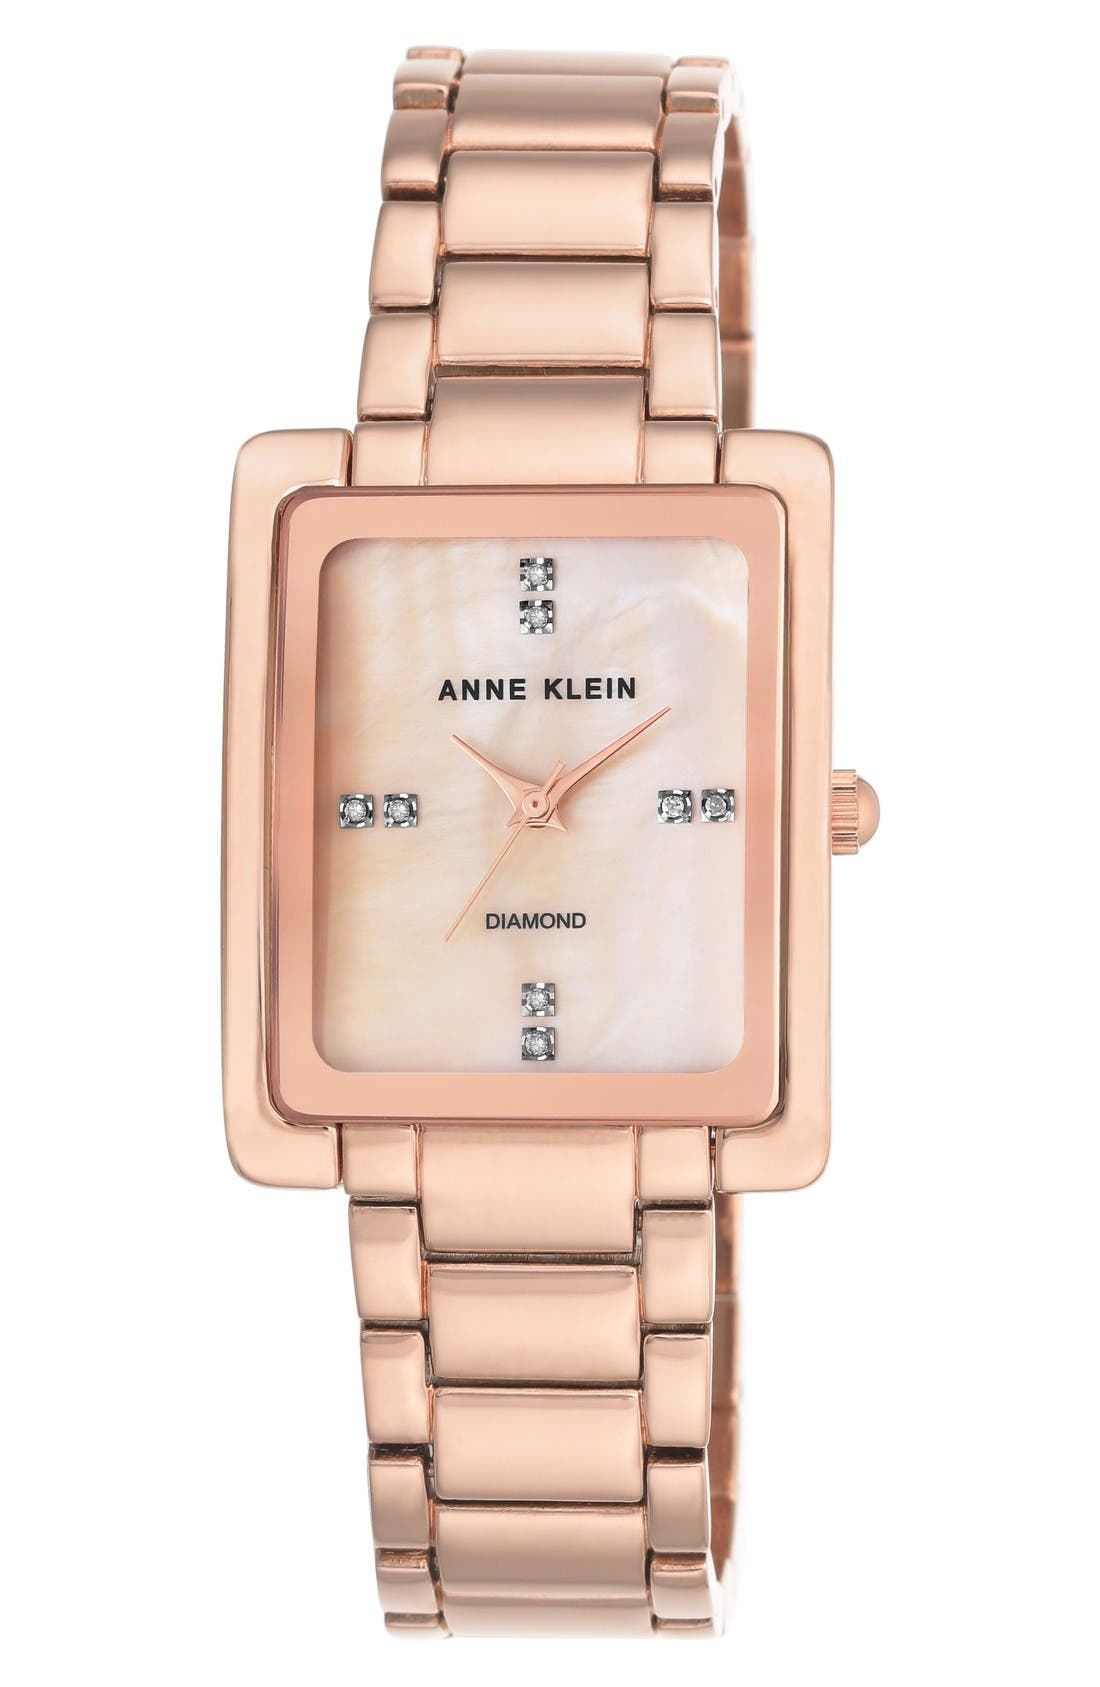 ANNE KLEIN Diamond Bracelet Watch, 28mm x 35mm